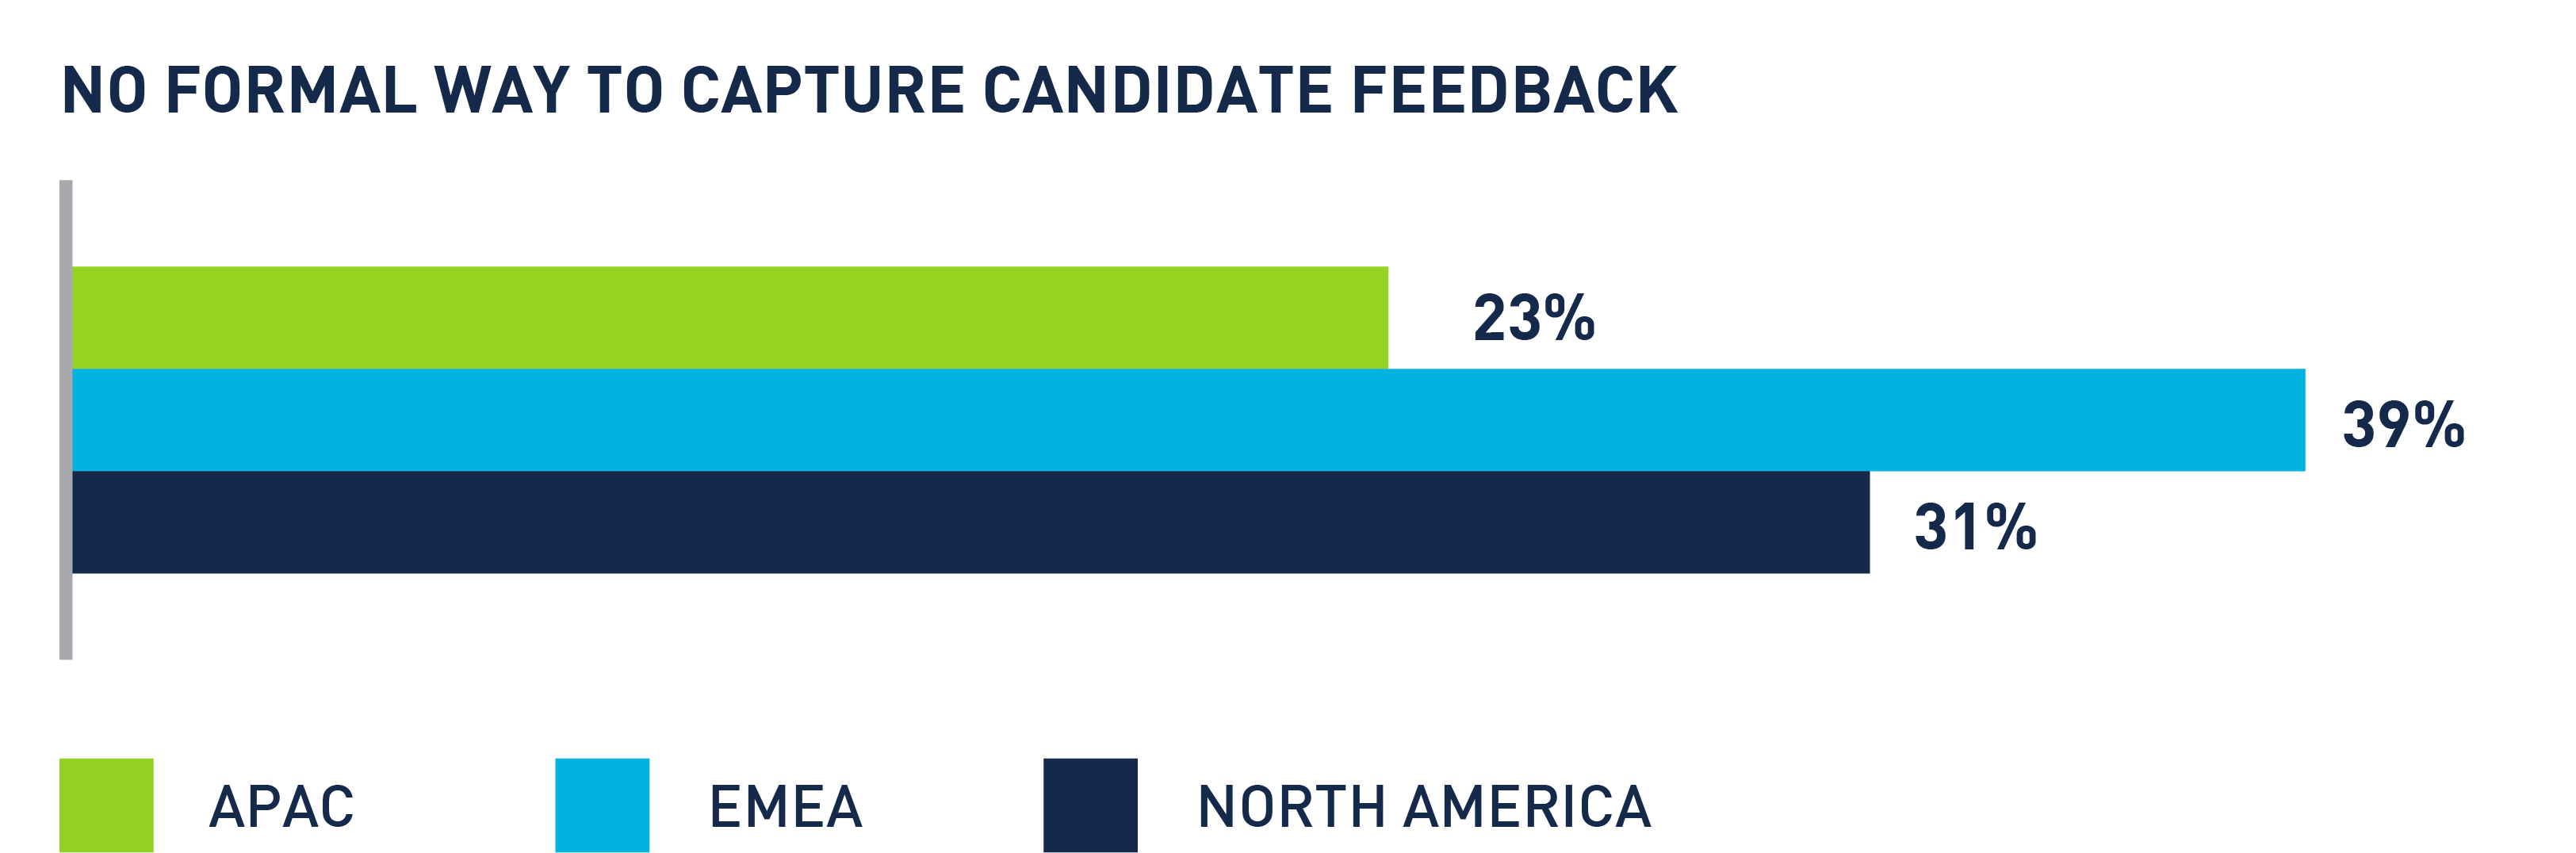 no formal way to capture canddiate feedback grahp